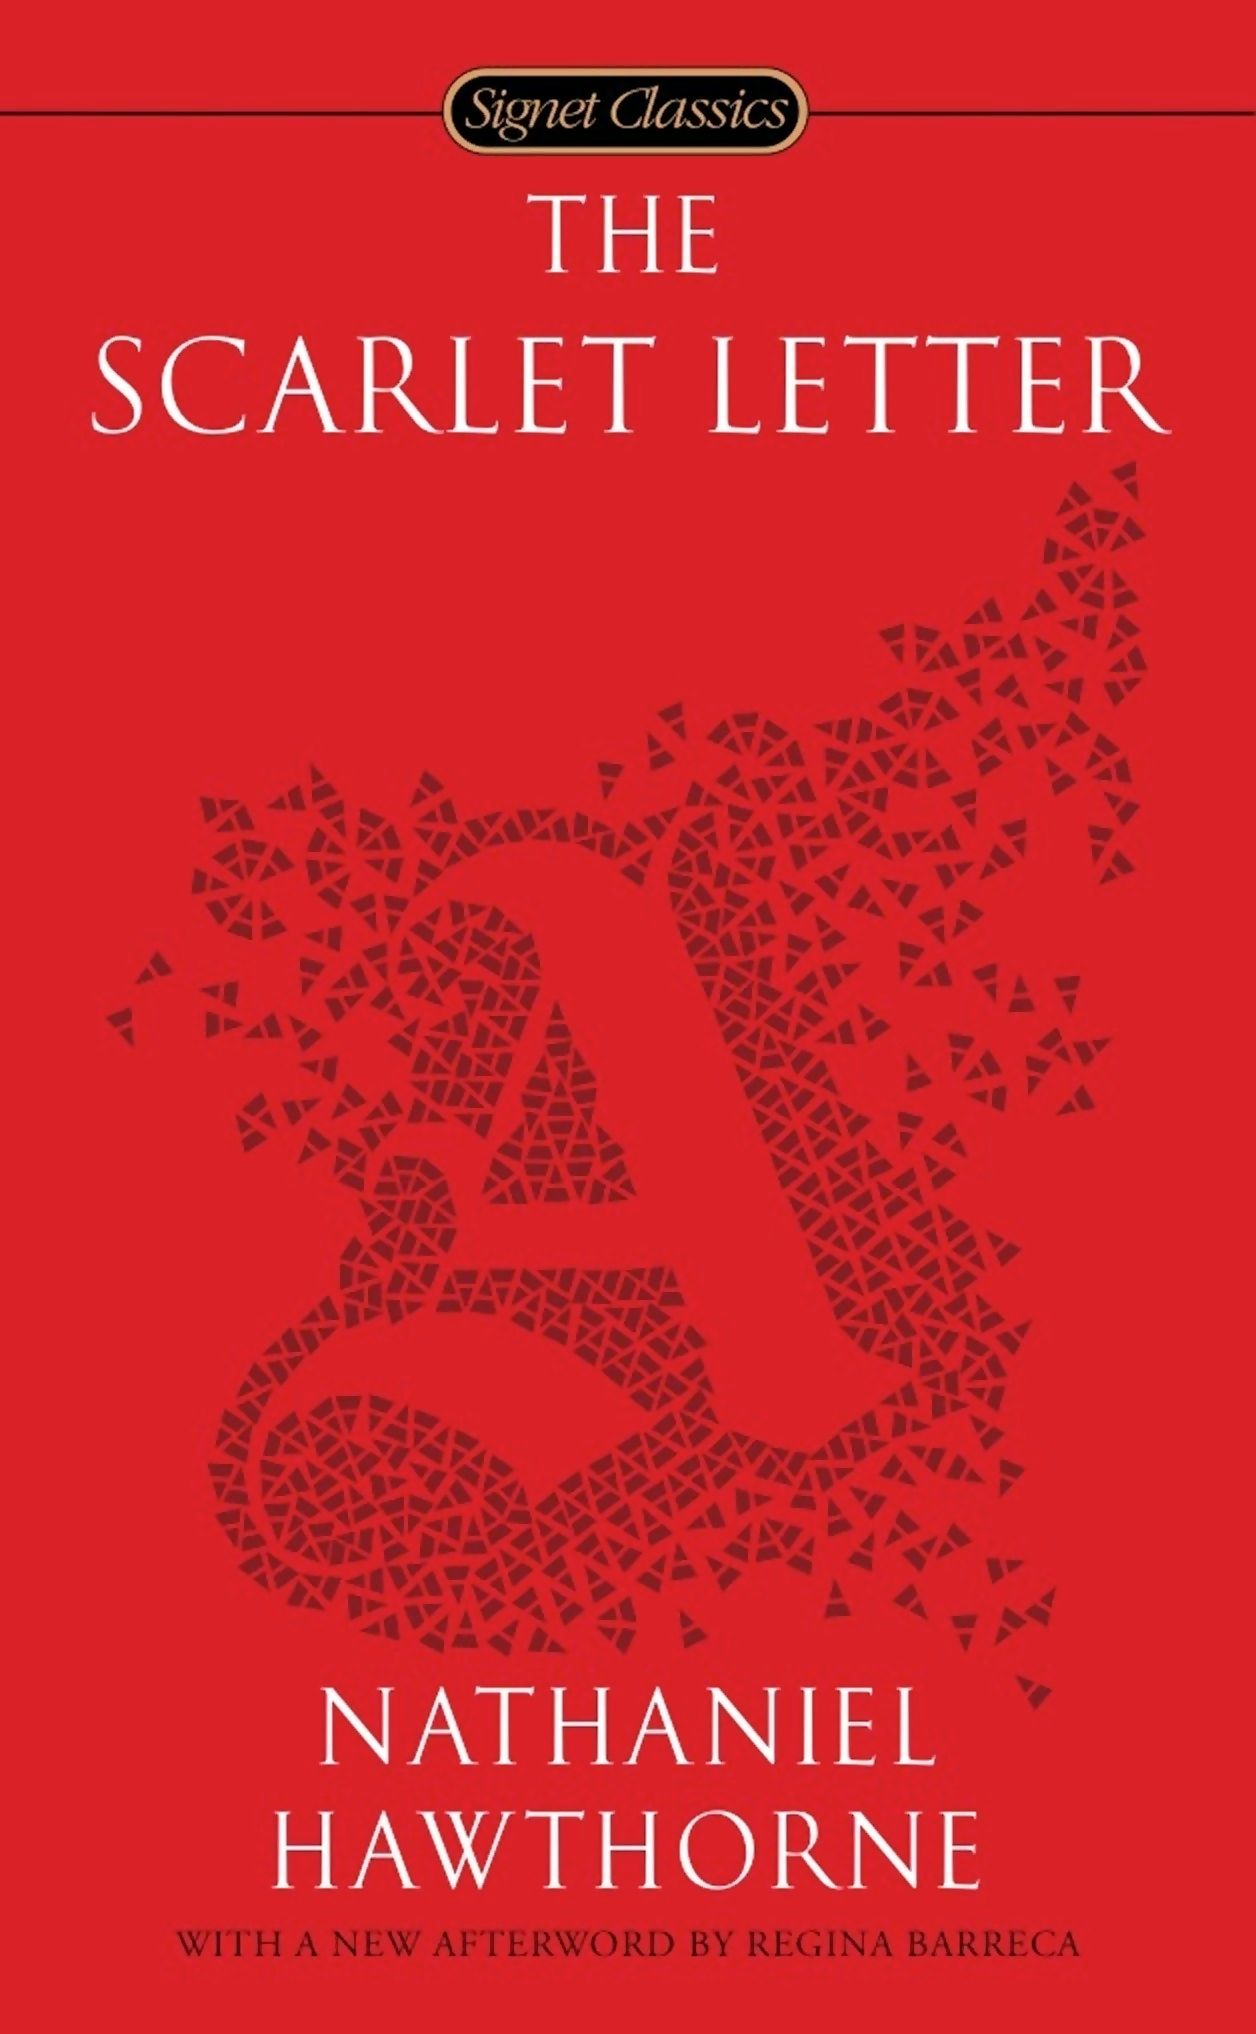 The Scarlet Letter is an 1850 novel written by Nathaniel